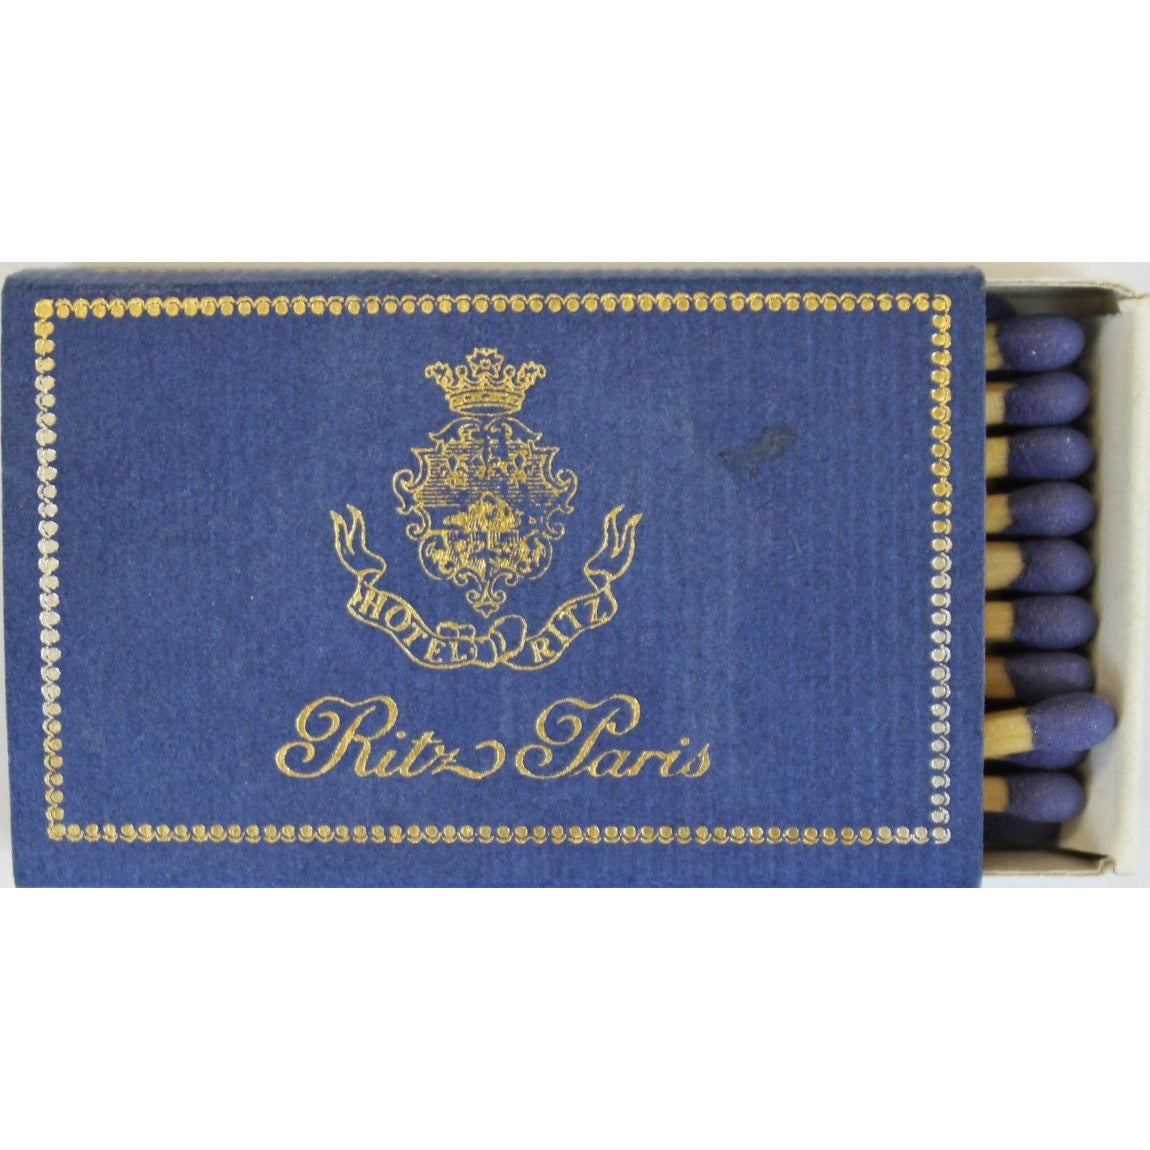 Ritz Paris Hotel Matchbook